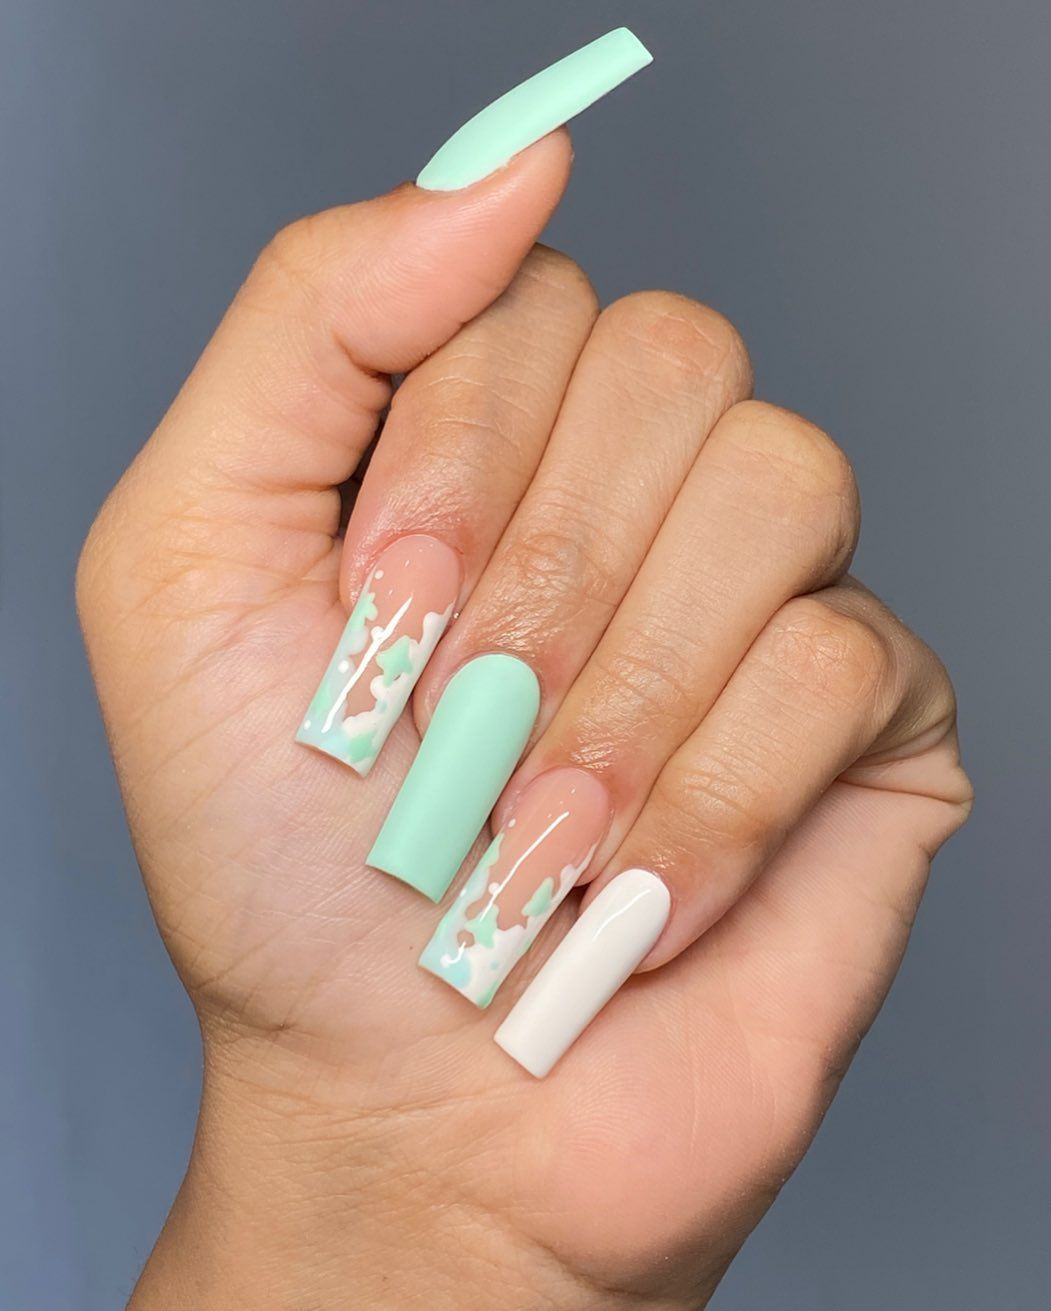 Jhohannails On Instagram Mint Cow Print Mint Green White Shopjhohannails Non Wipe Matte Top C In 2020 Pink Acrylic Nails Acrylic Nails Green Acrylic Nails